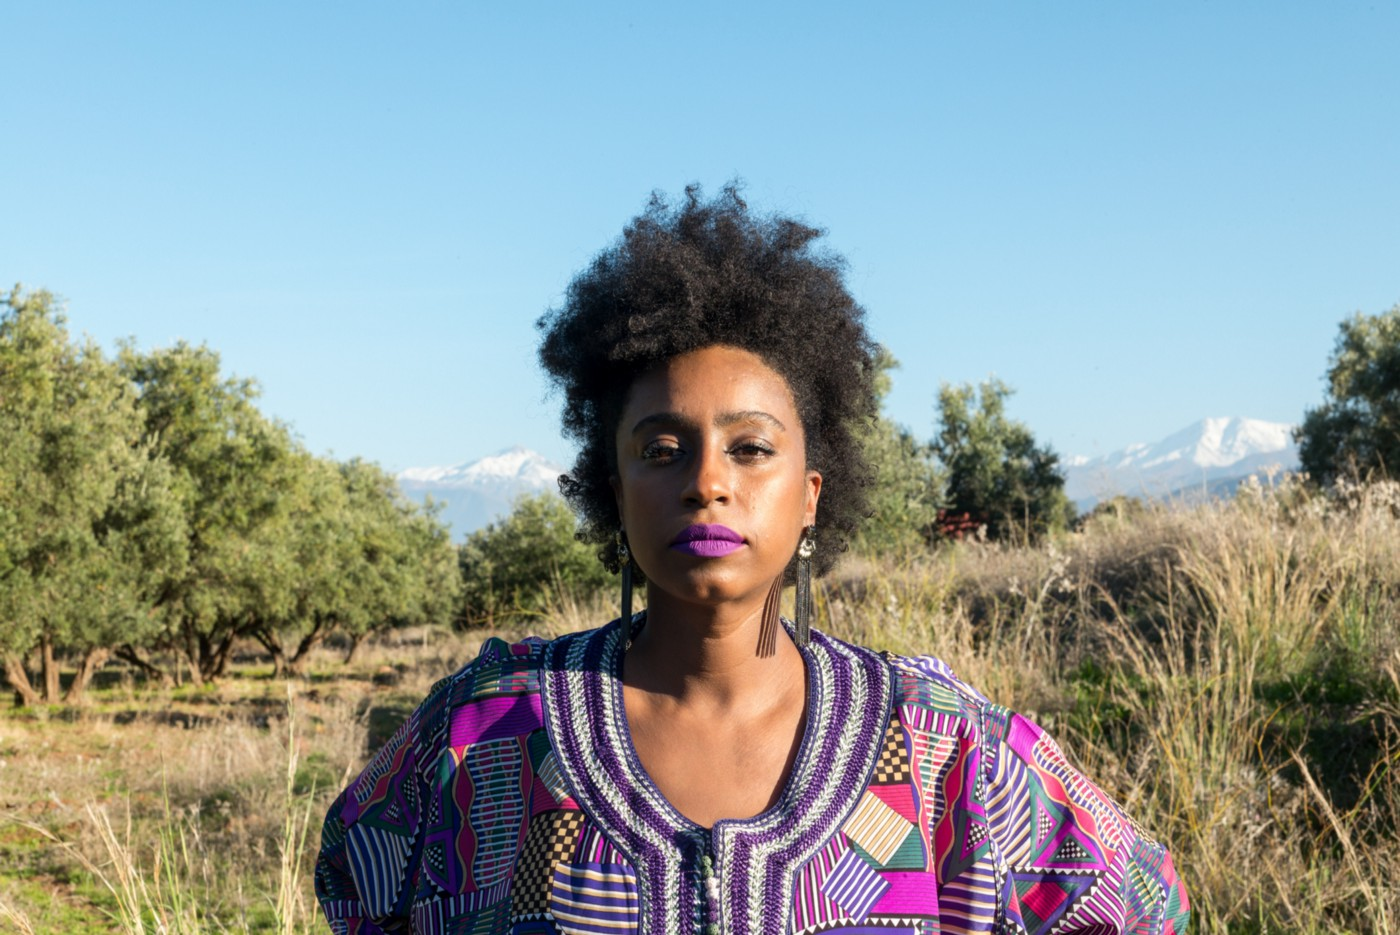 A confident Black woman standing against a prairie-like background.